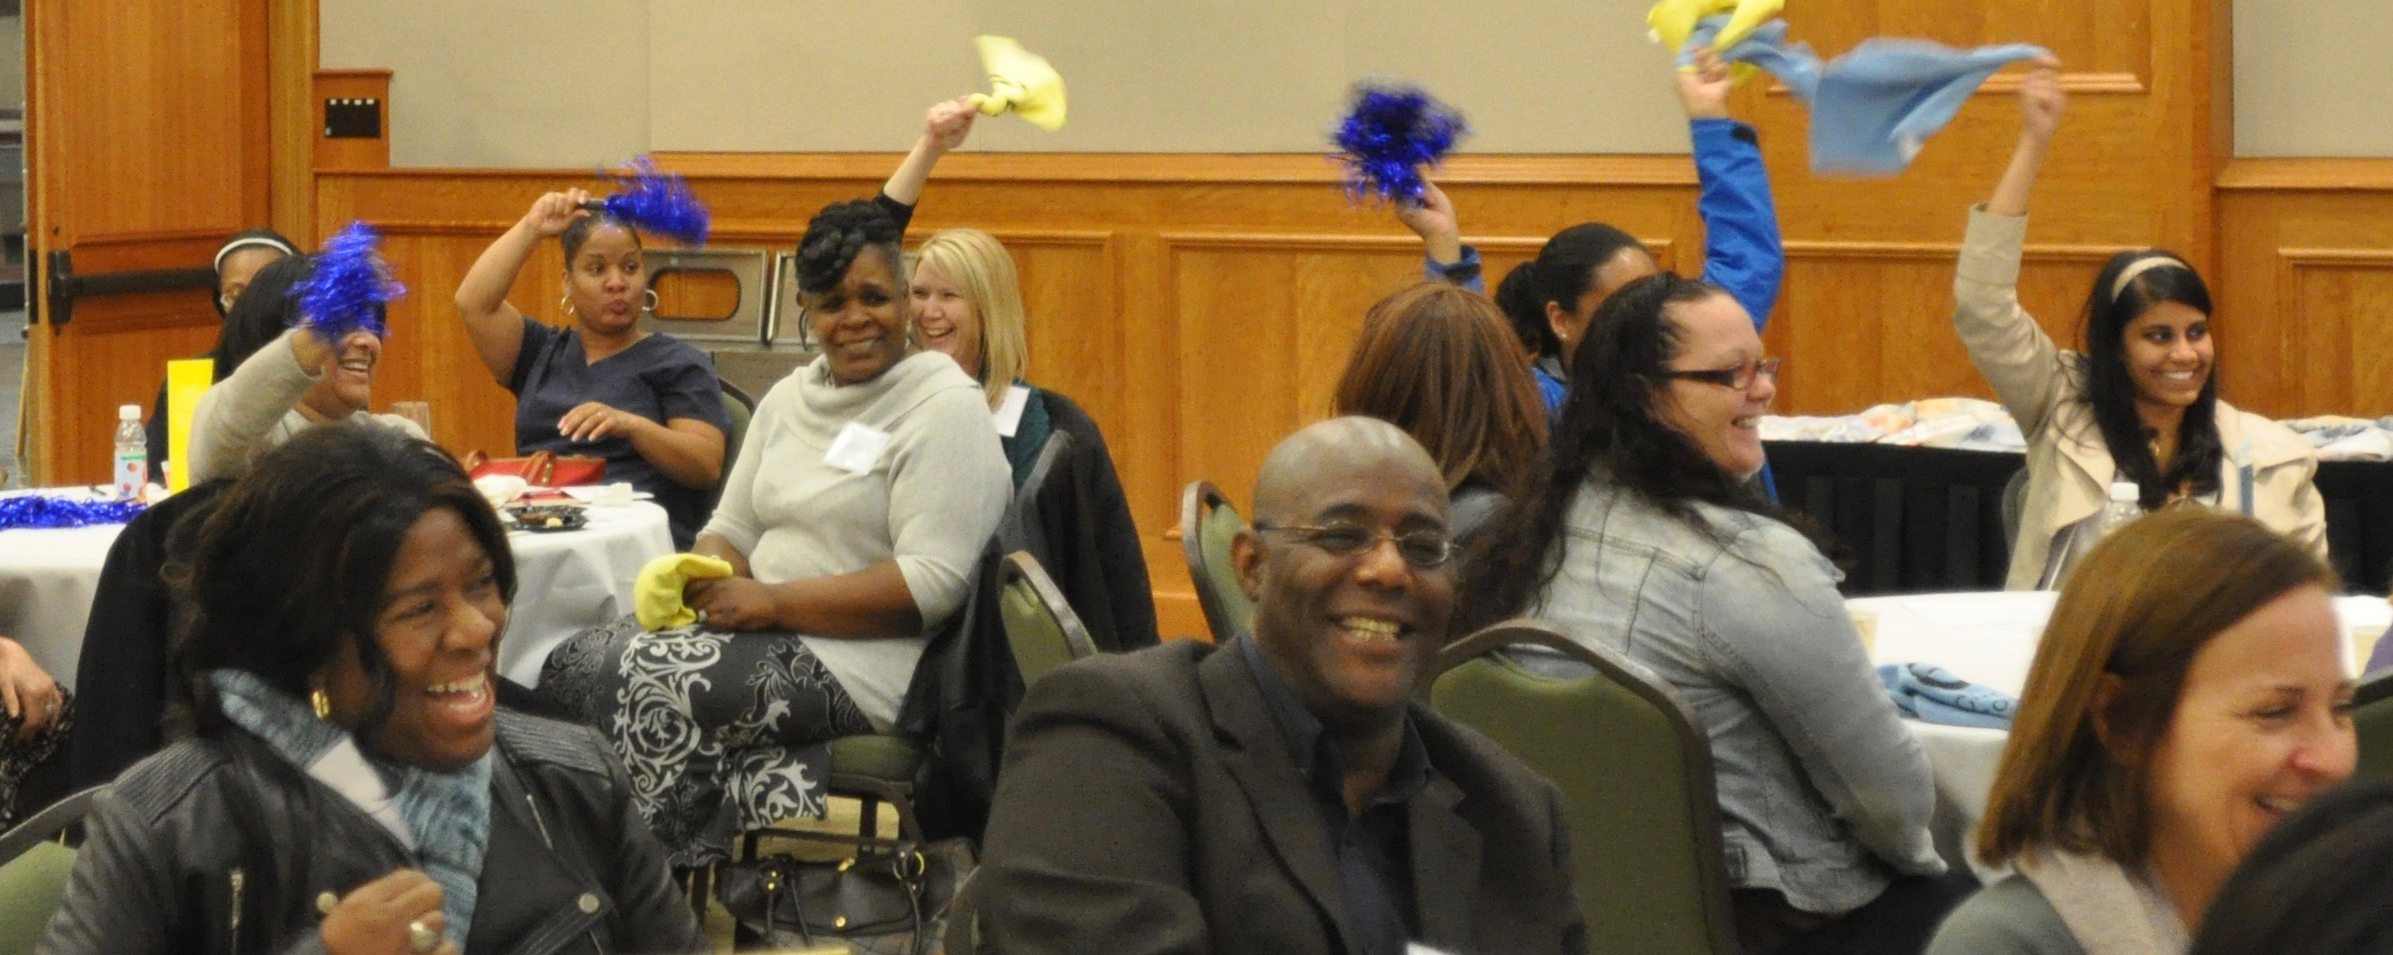 ACO members cheering for their teams at a recent dinner event